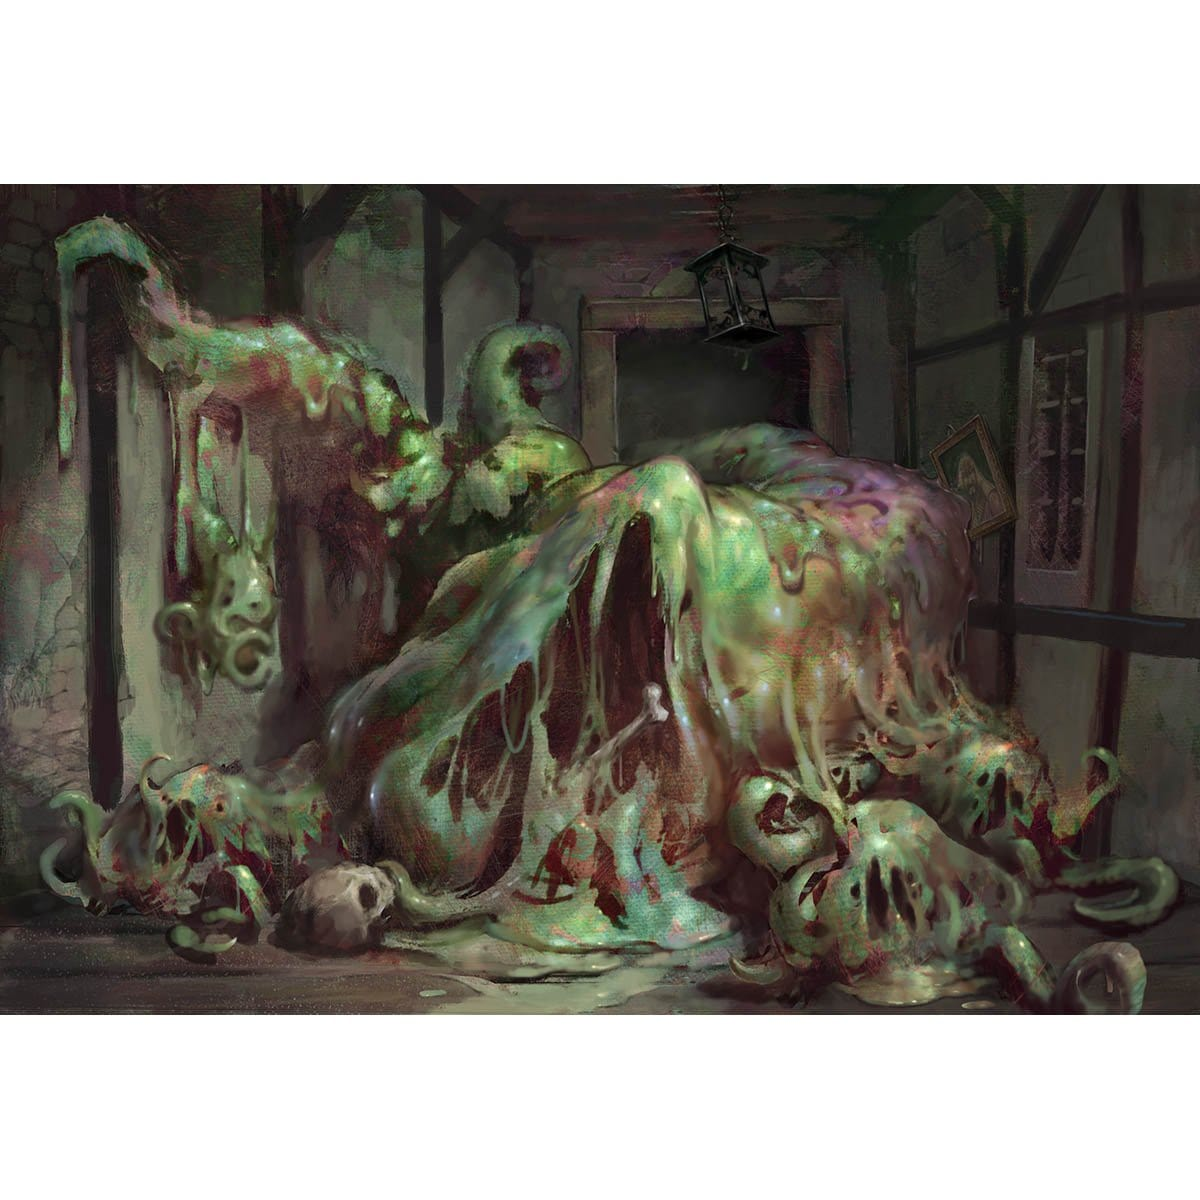 Inexorable Blob Print - Print - Original Magic Art - Accessories for Magic the Gathering and other card games